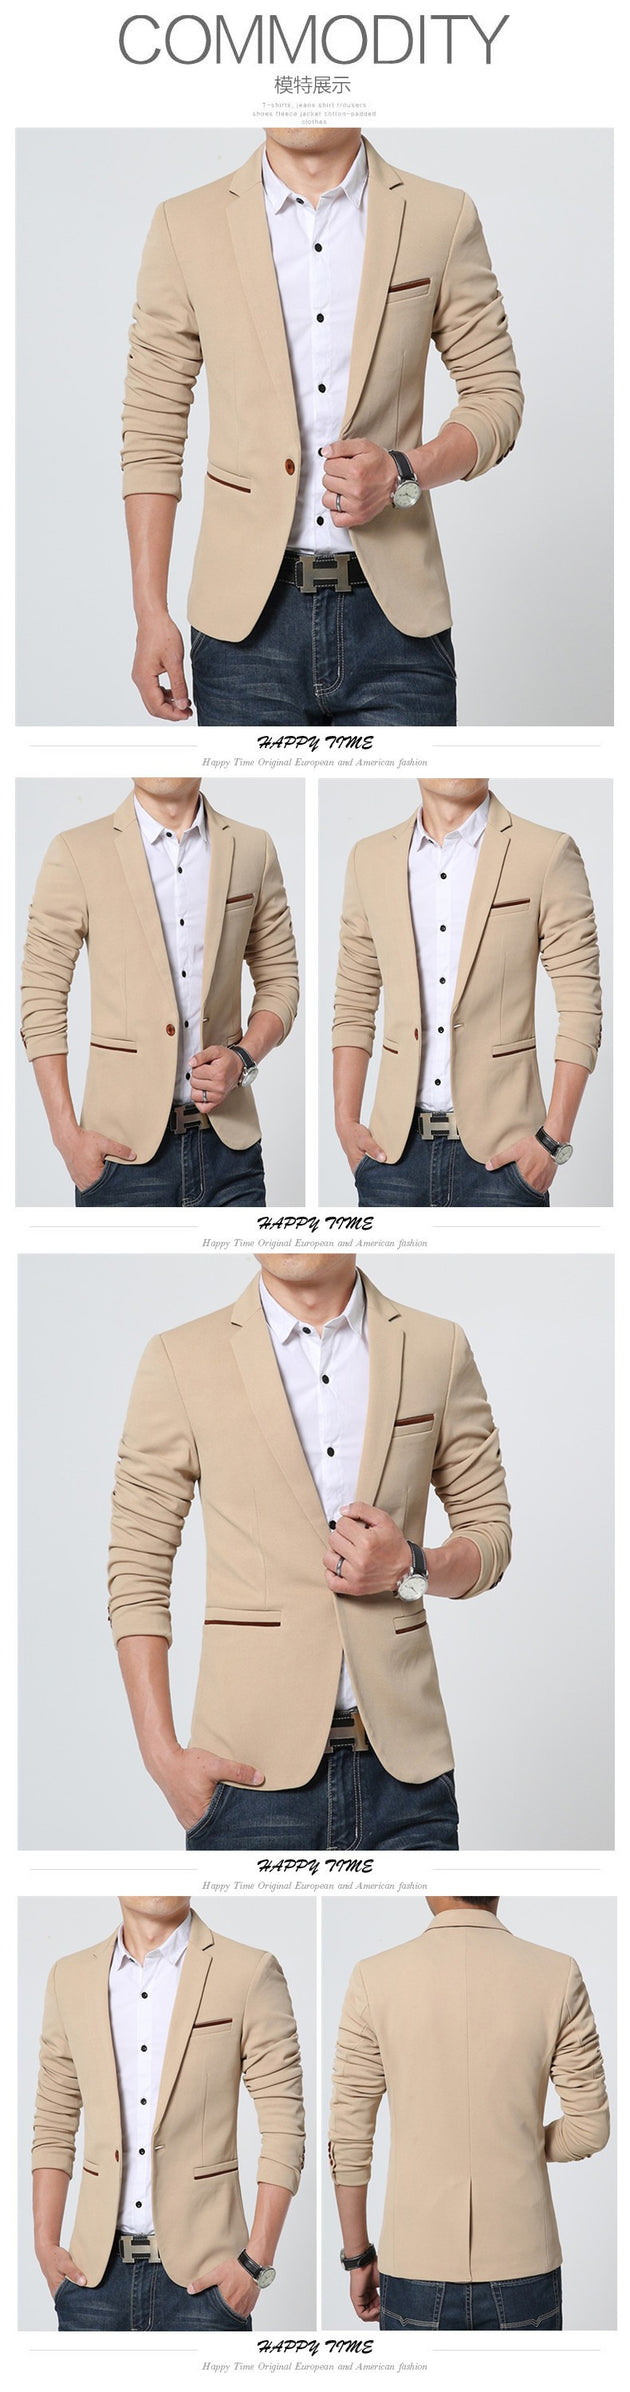 Men's Casual Blazer Up To 5XL - TrendSettingFashions